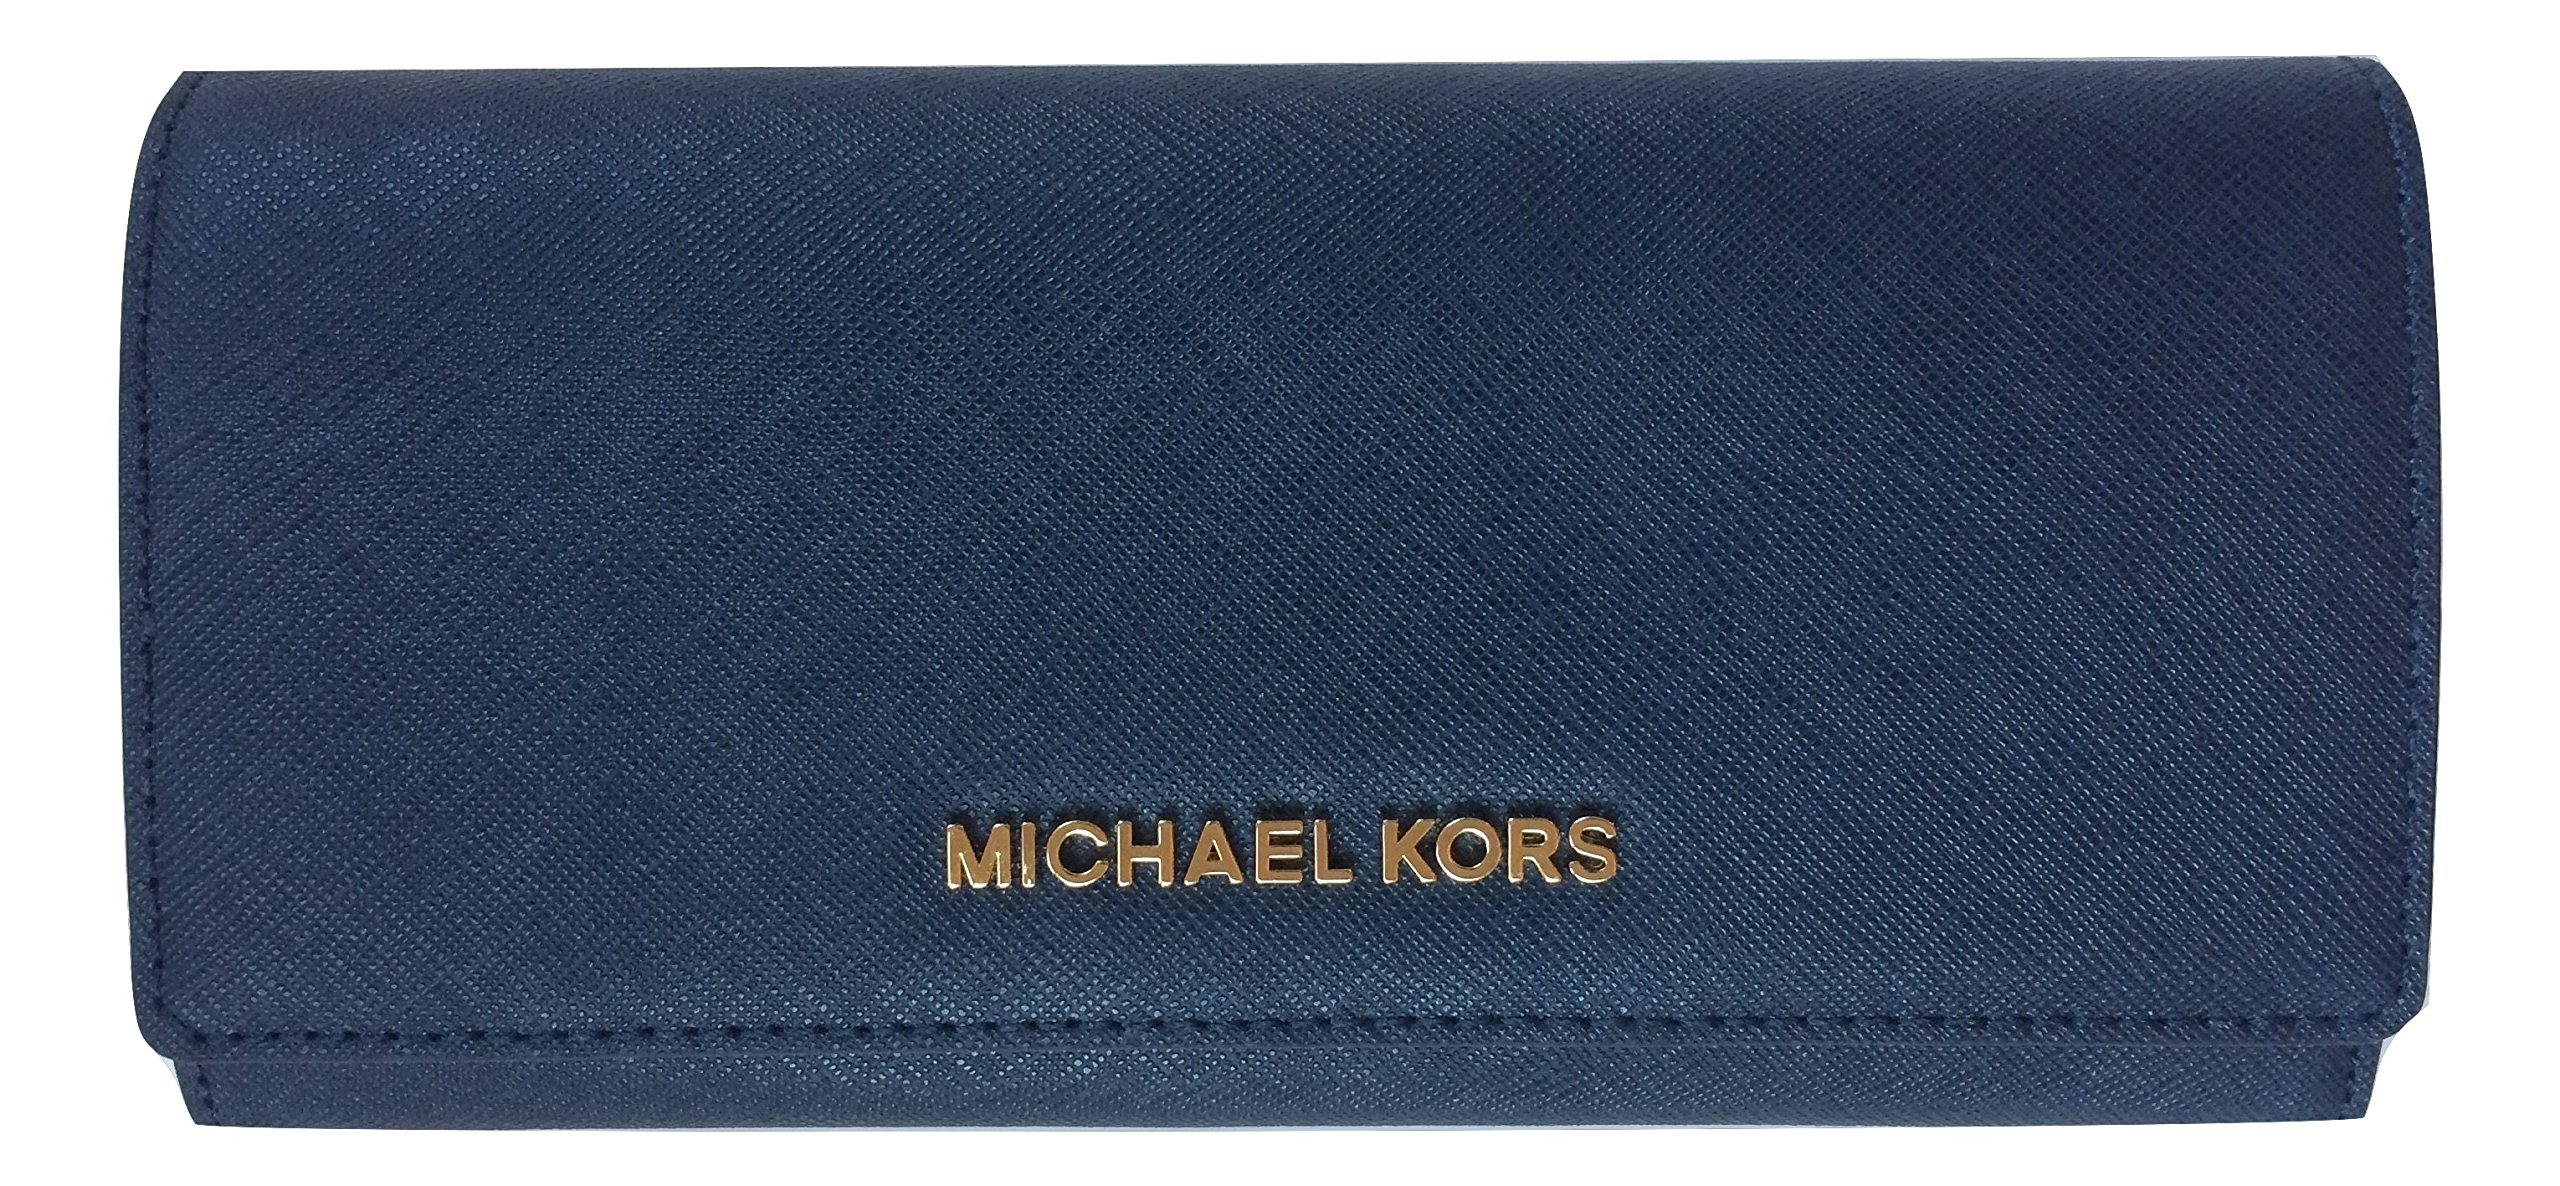 Michael Kors Jet Set Saffiano Leather Carryall Wallet (Navy)